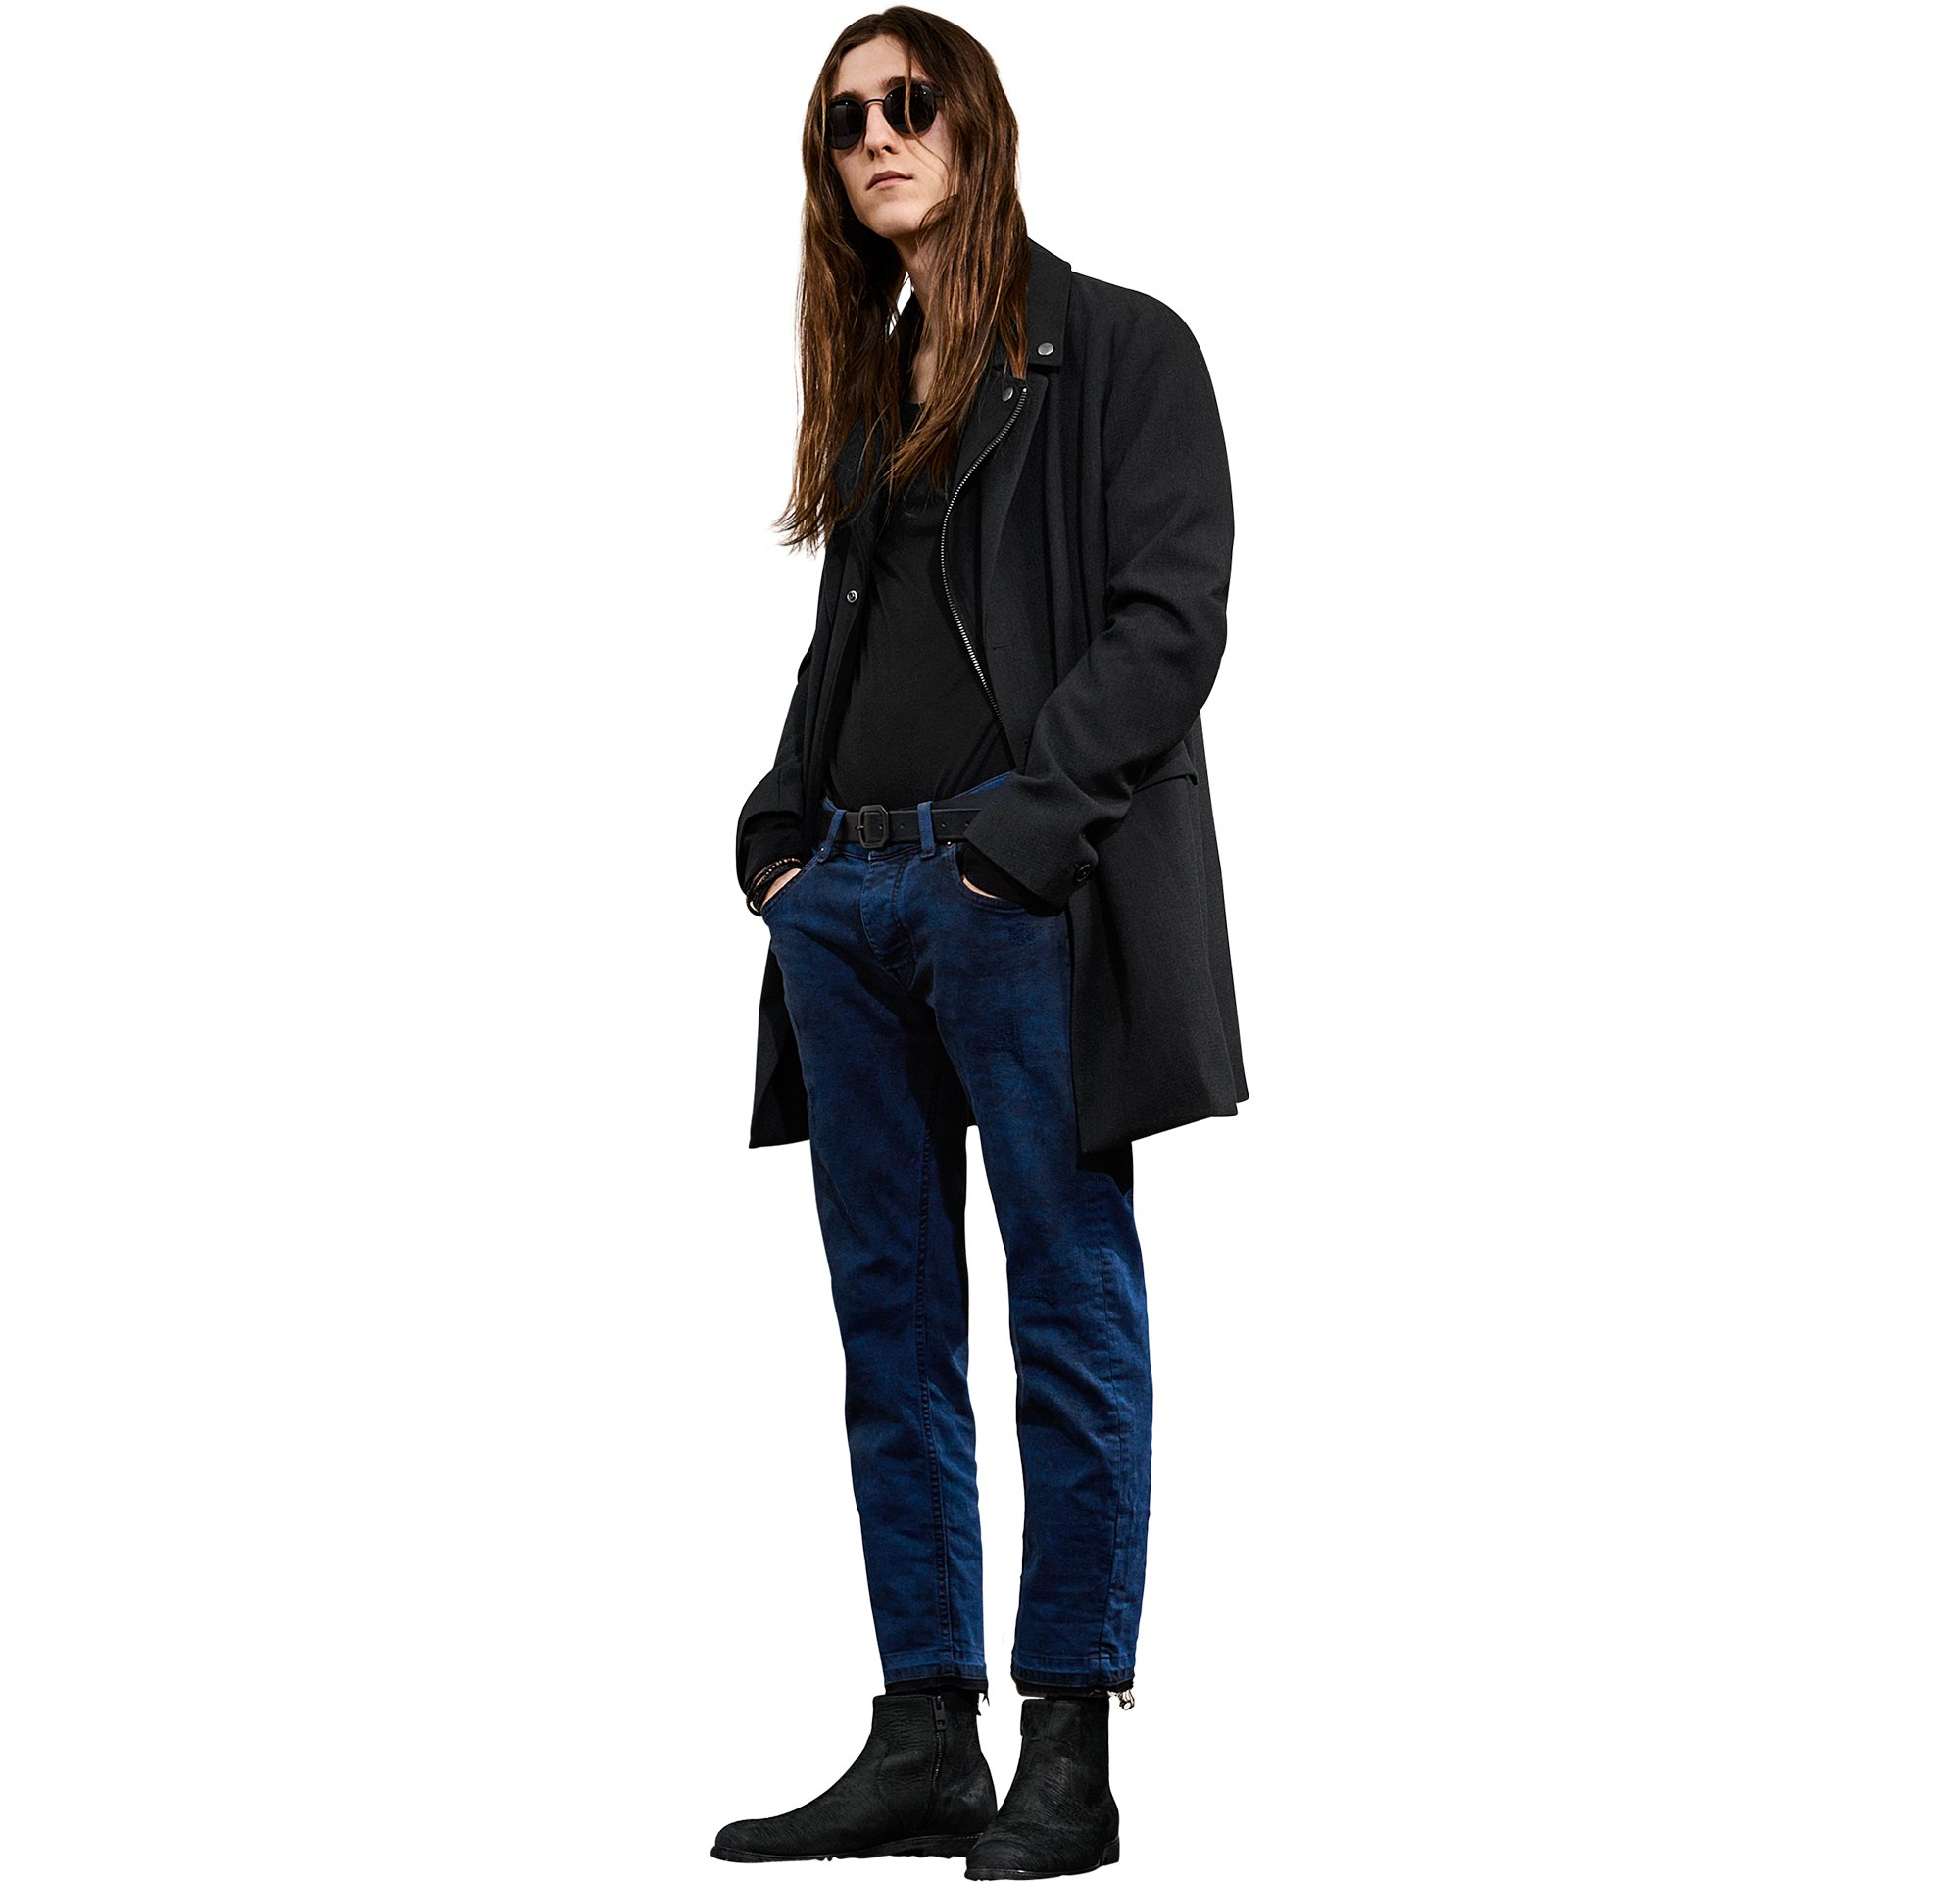 Black jacket over black jersey and blue jeans with black shoes by BOSS Orange